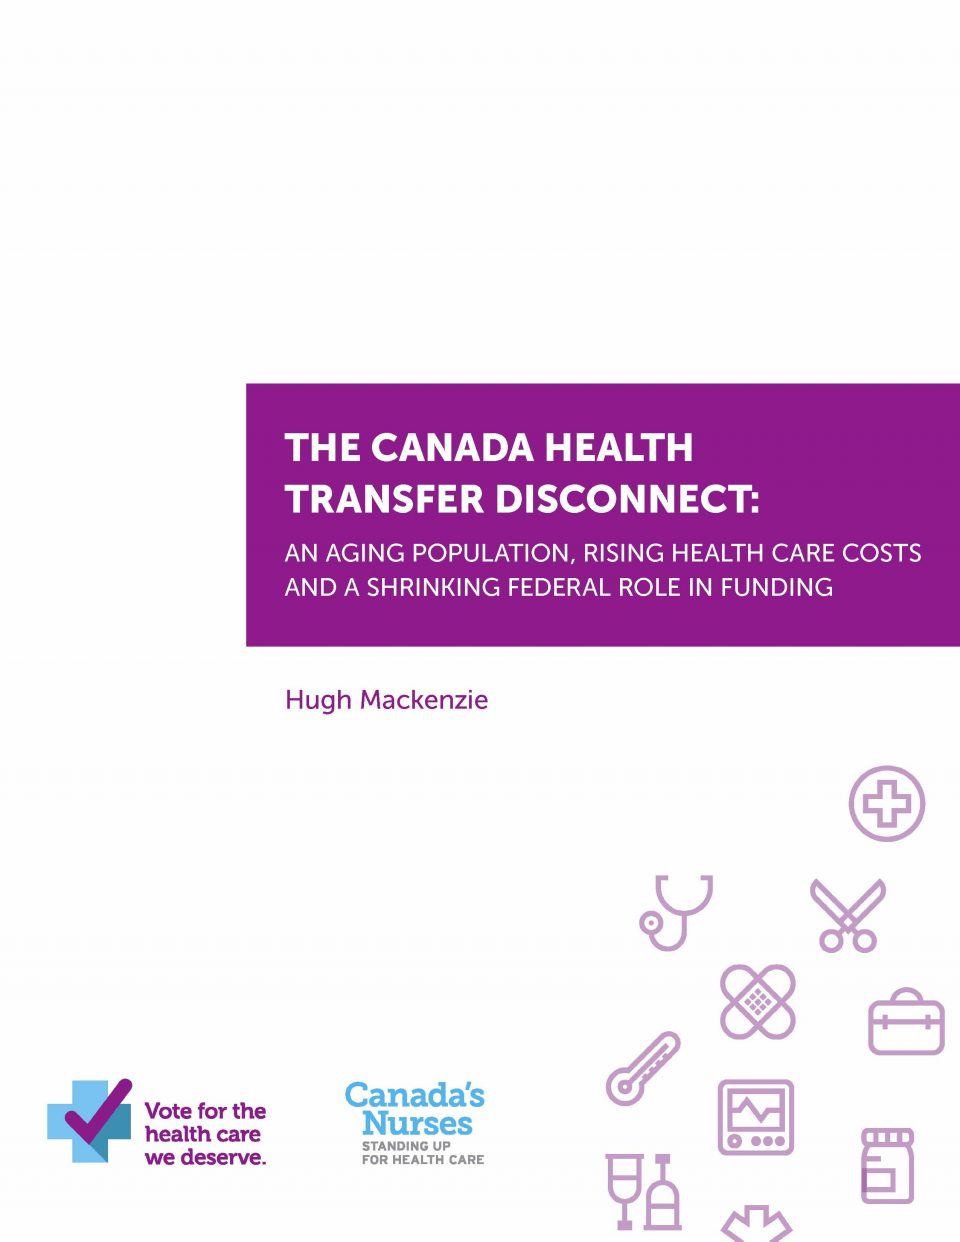 The Canada Health Transfer Disconnect: An Aging Population, Rising Health Care Costs and a Shrinking Federal Role in Funding